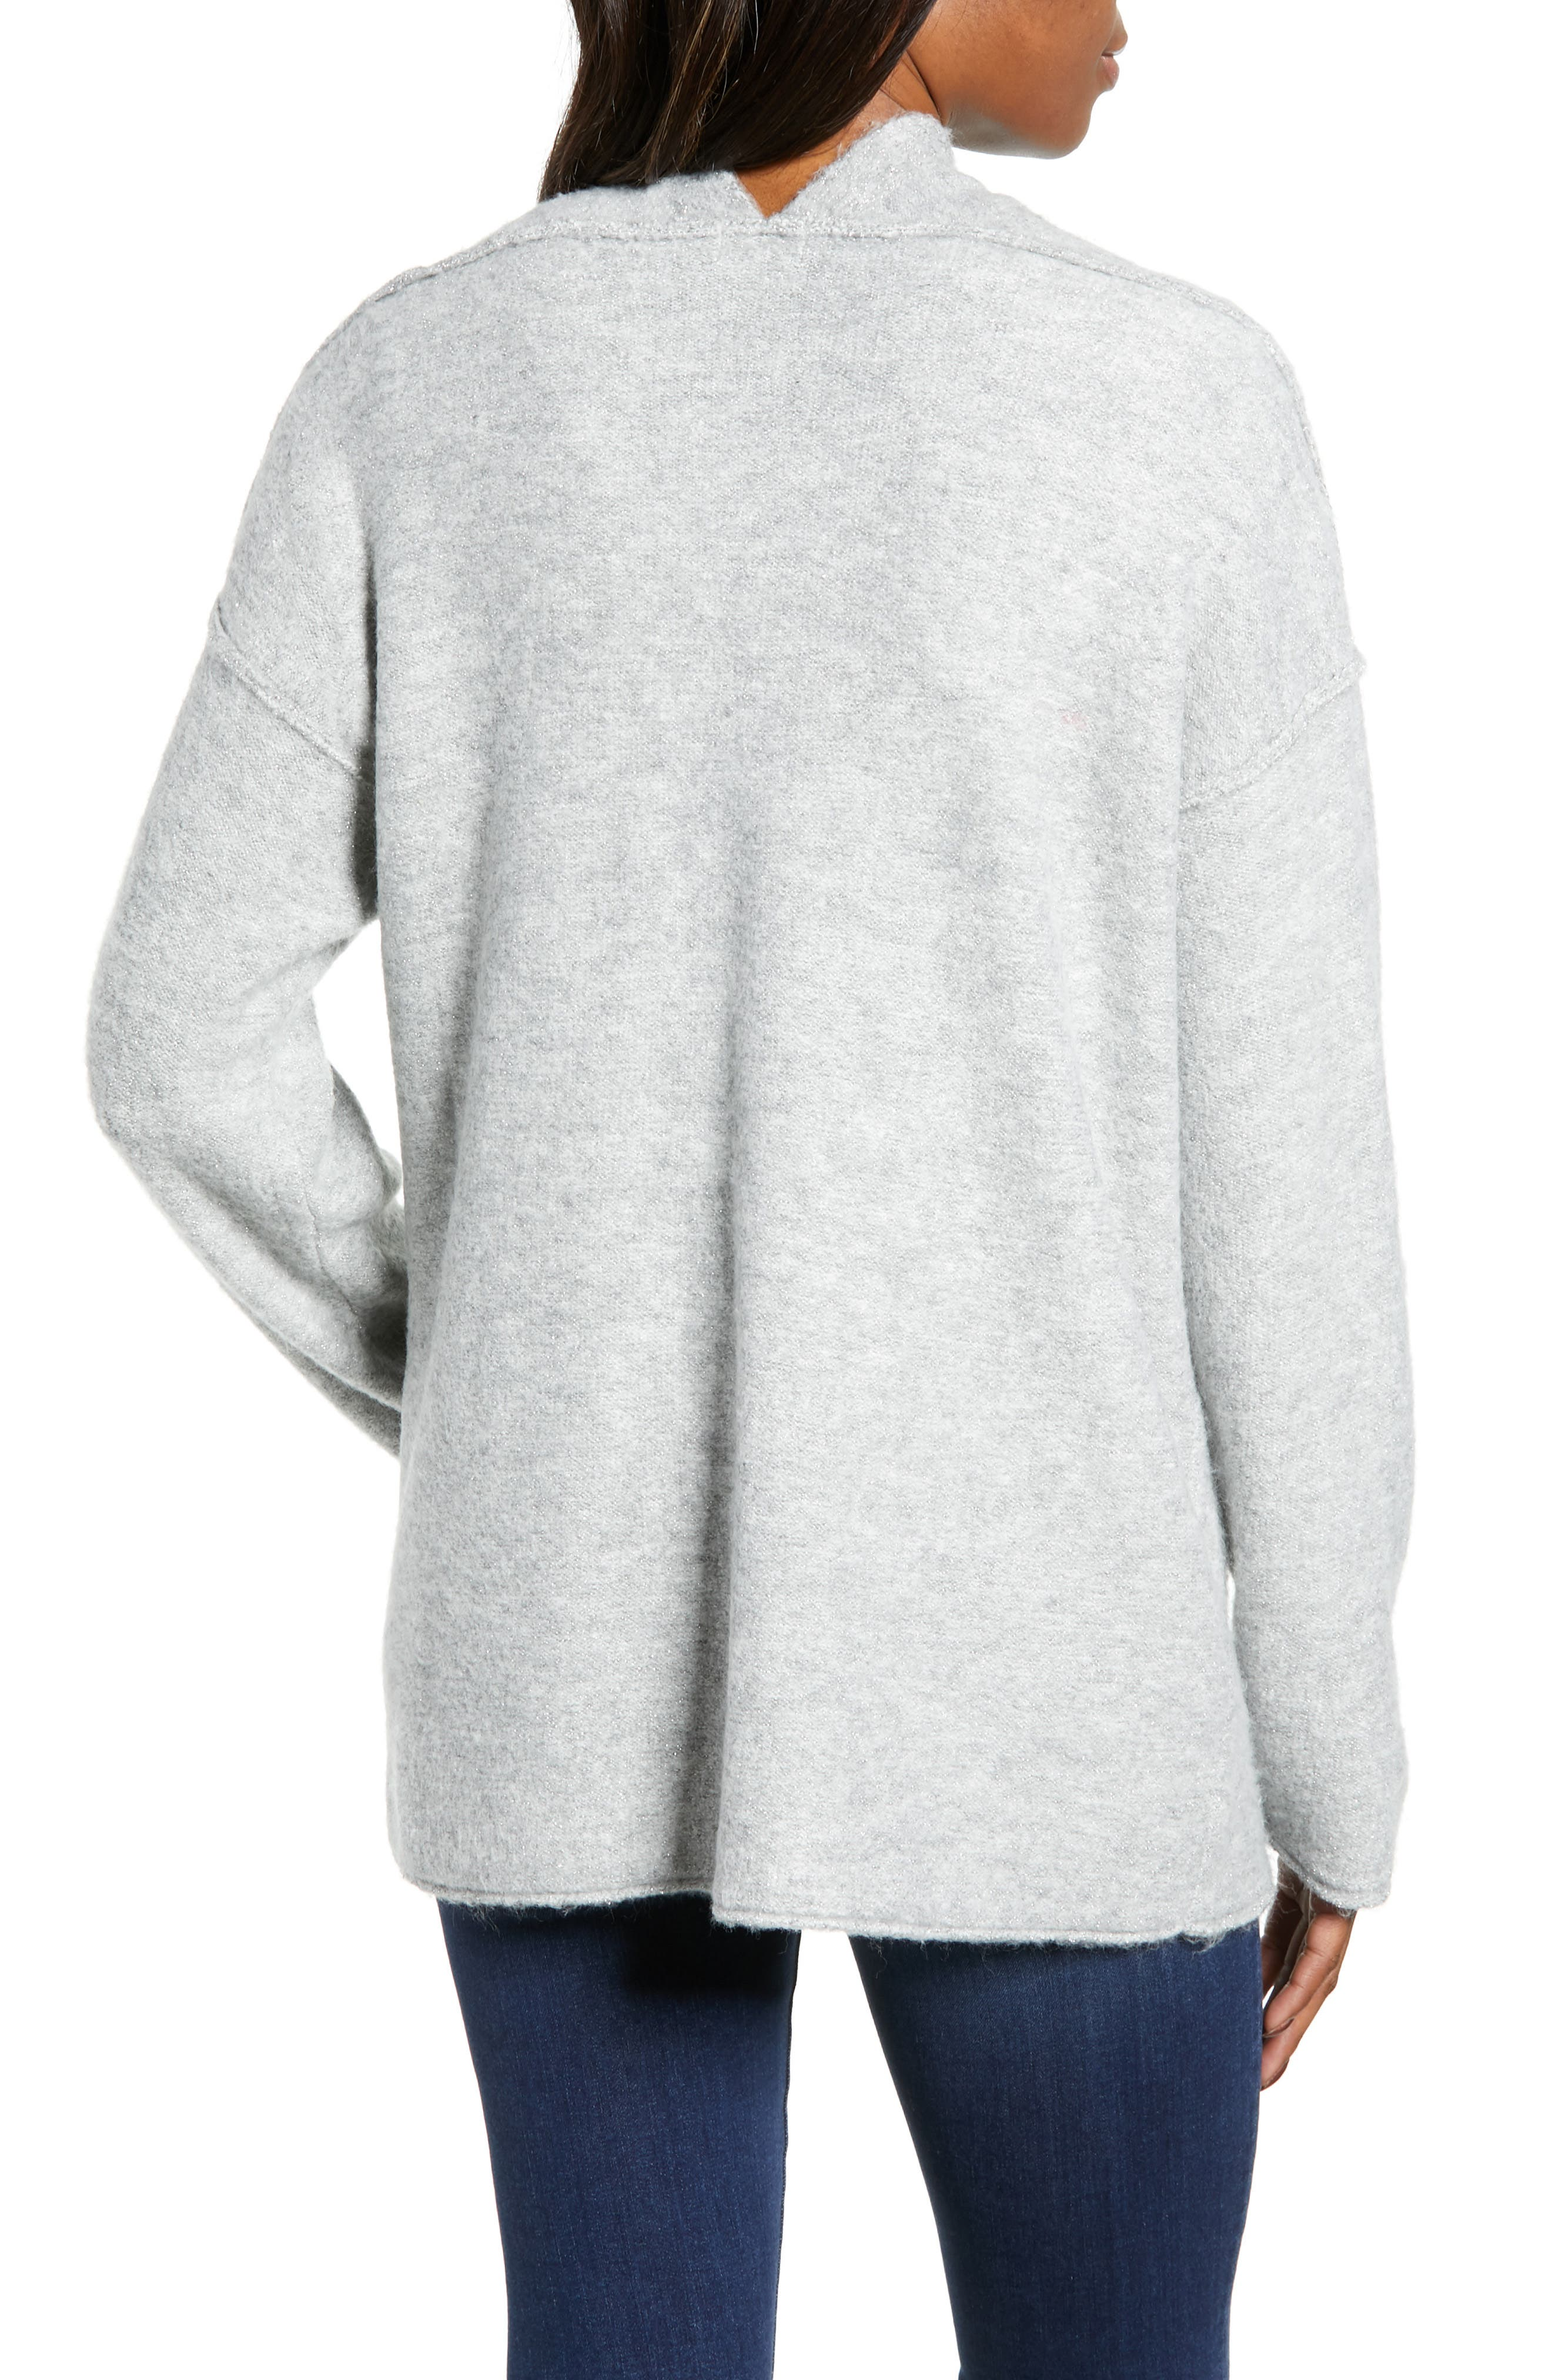 Dolman Sleeve Shimmer Cardigan,                             Alternate thumbnail 2, color,                             GREY HEATHER SHIMMER